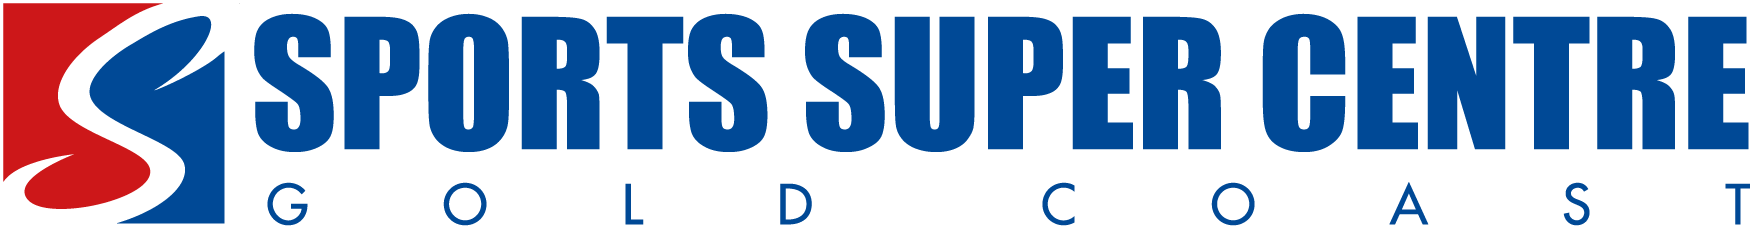 SSC-logo-with-text-beside-BLUE-TEXT